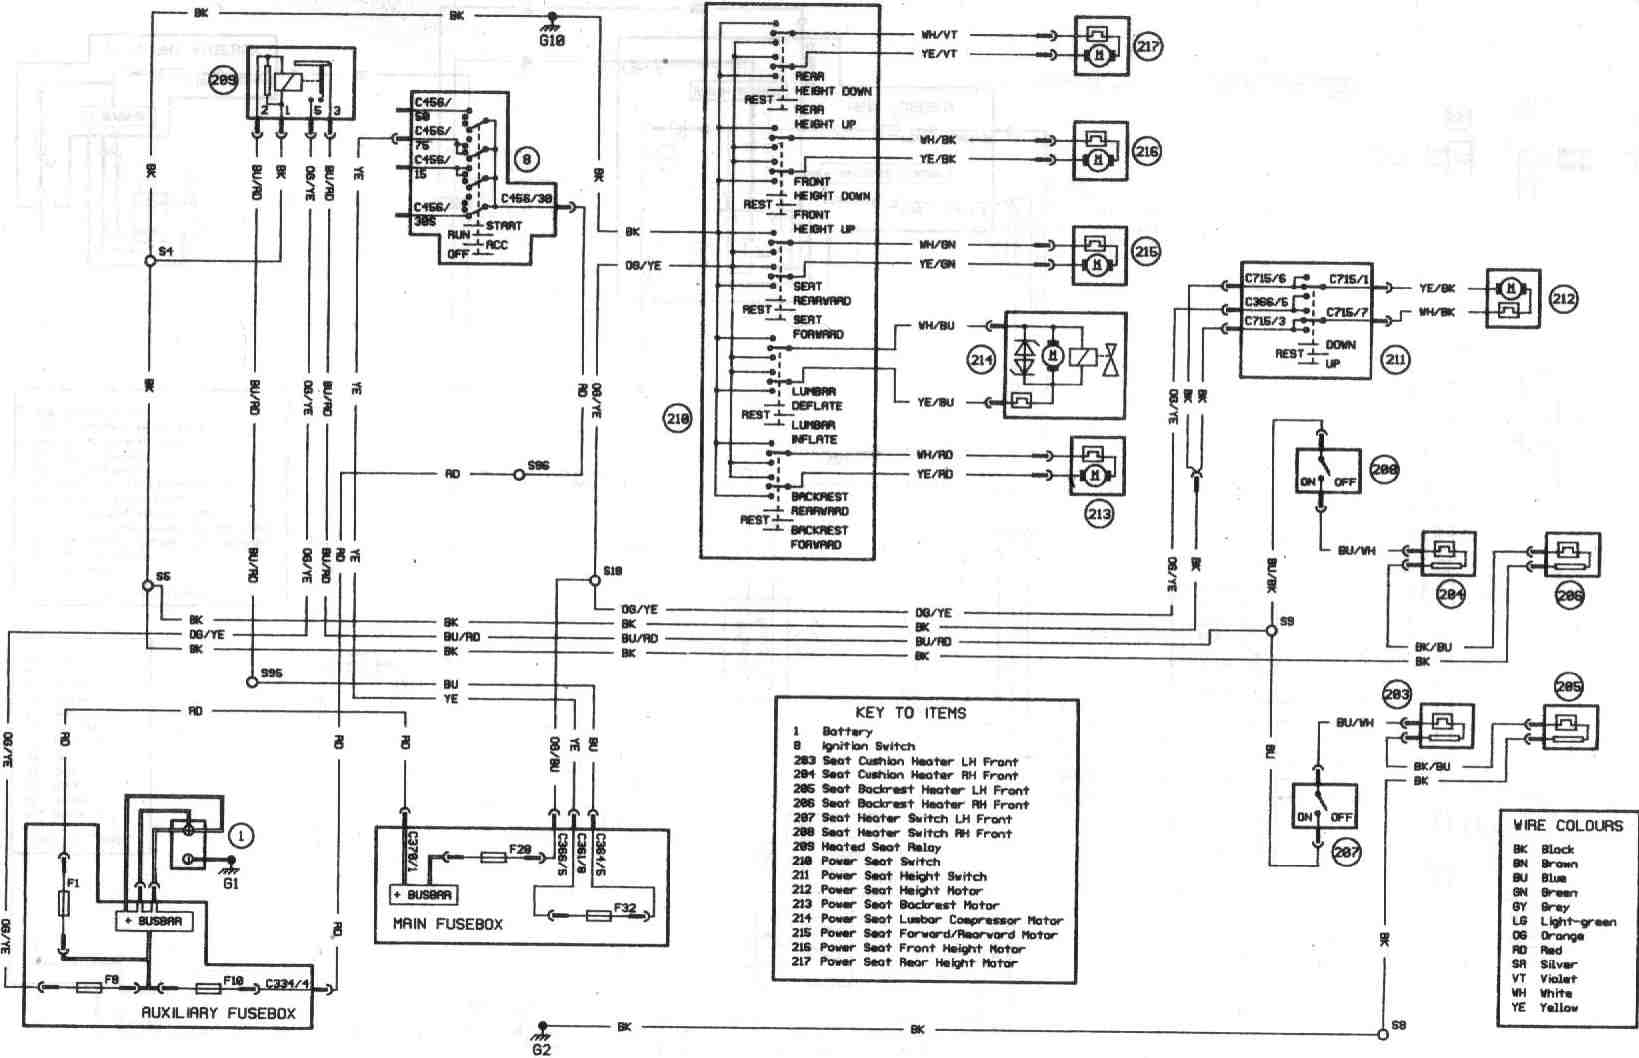 hight resolution of ford ka wiring diagram wiring diagram expert wiring diagram for kawasaki vulcan ford ka wiring diagram